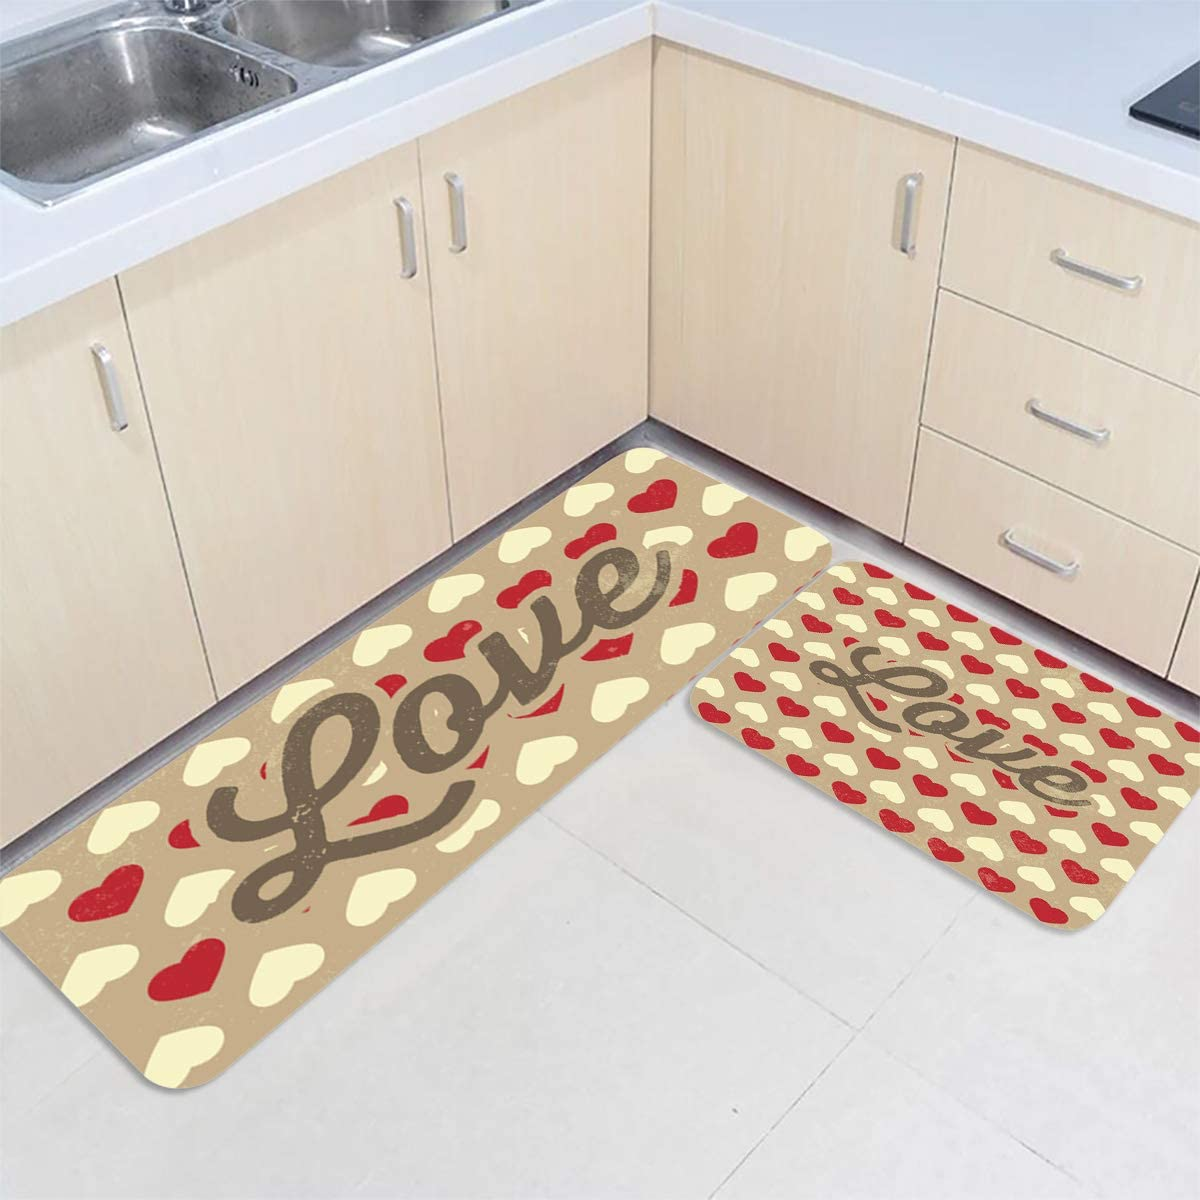 Amazon Com Kitchen Rug Set Valentine S Day Love Beige And Red Hearts 2pc Set Non Slid Accent Throw Rugs Runner For Entryway Living Room Bedroom Floor Mats 20 X31 5 20 X63 Home Kitchen